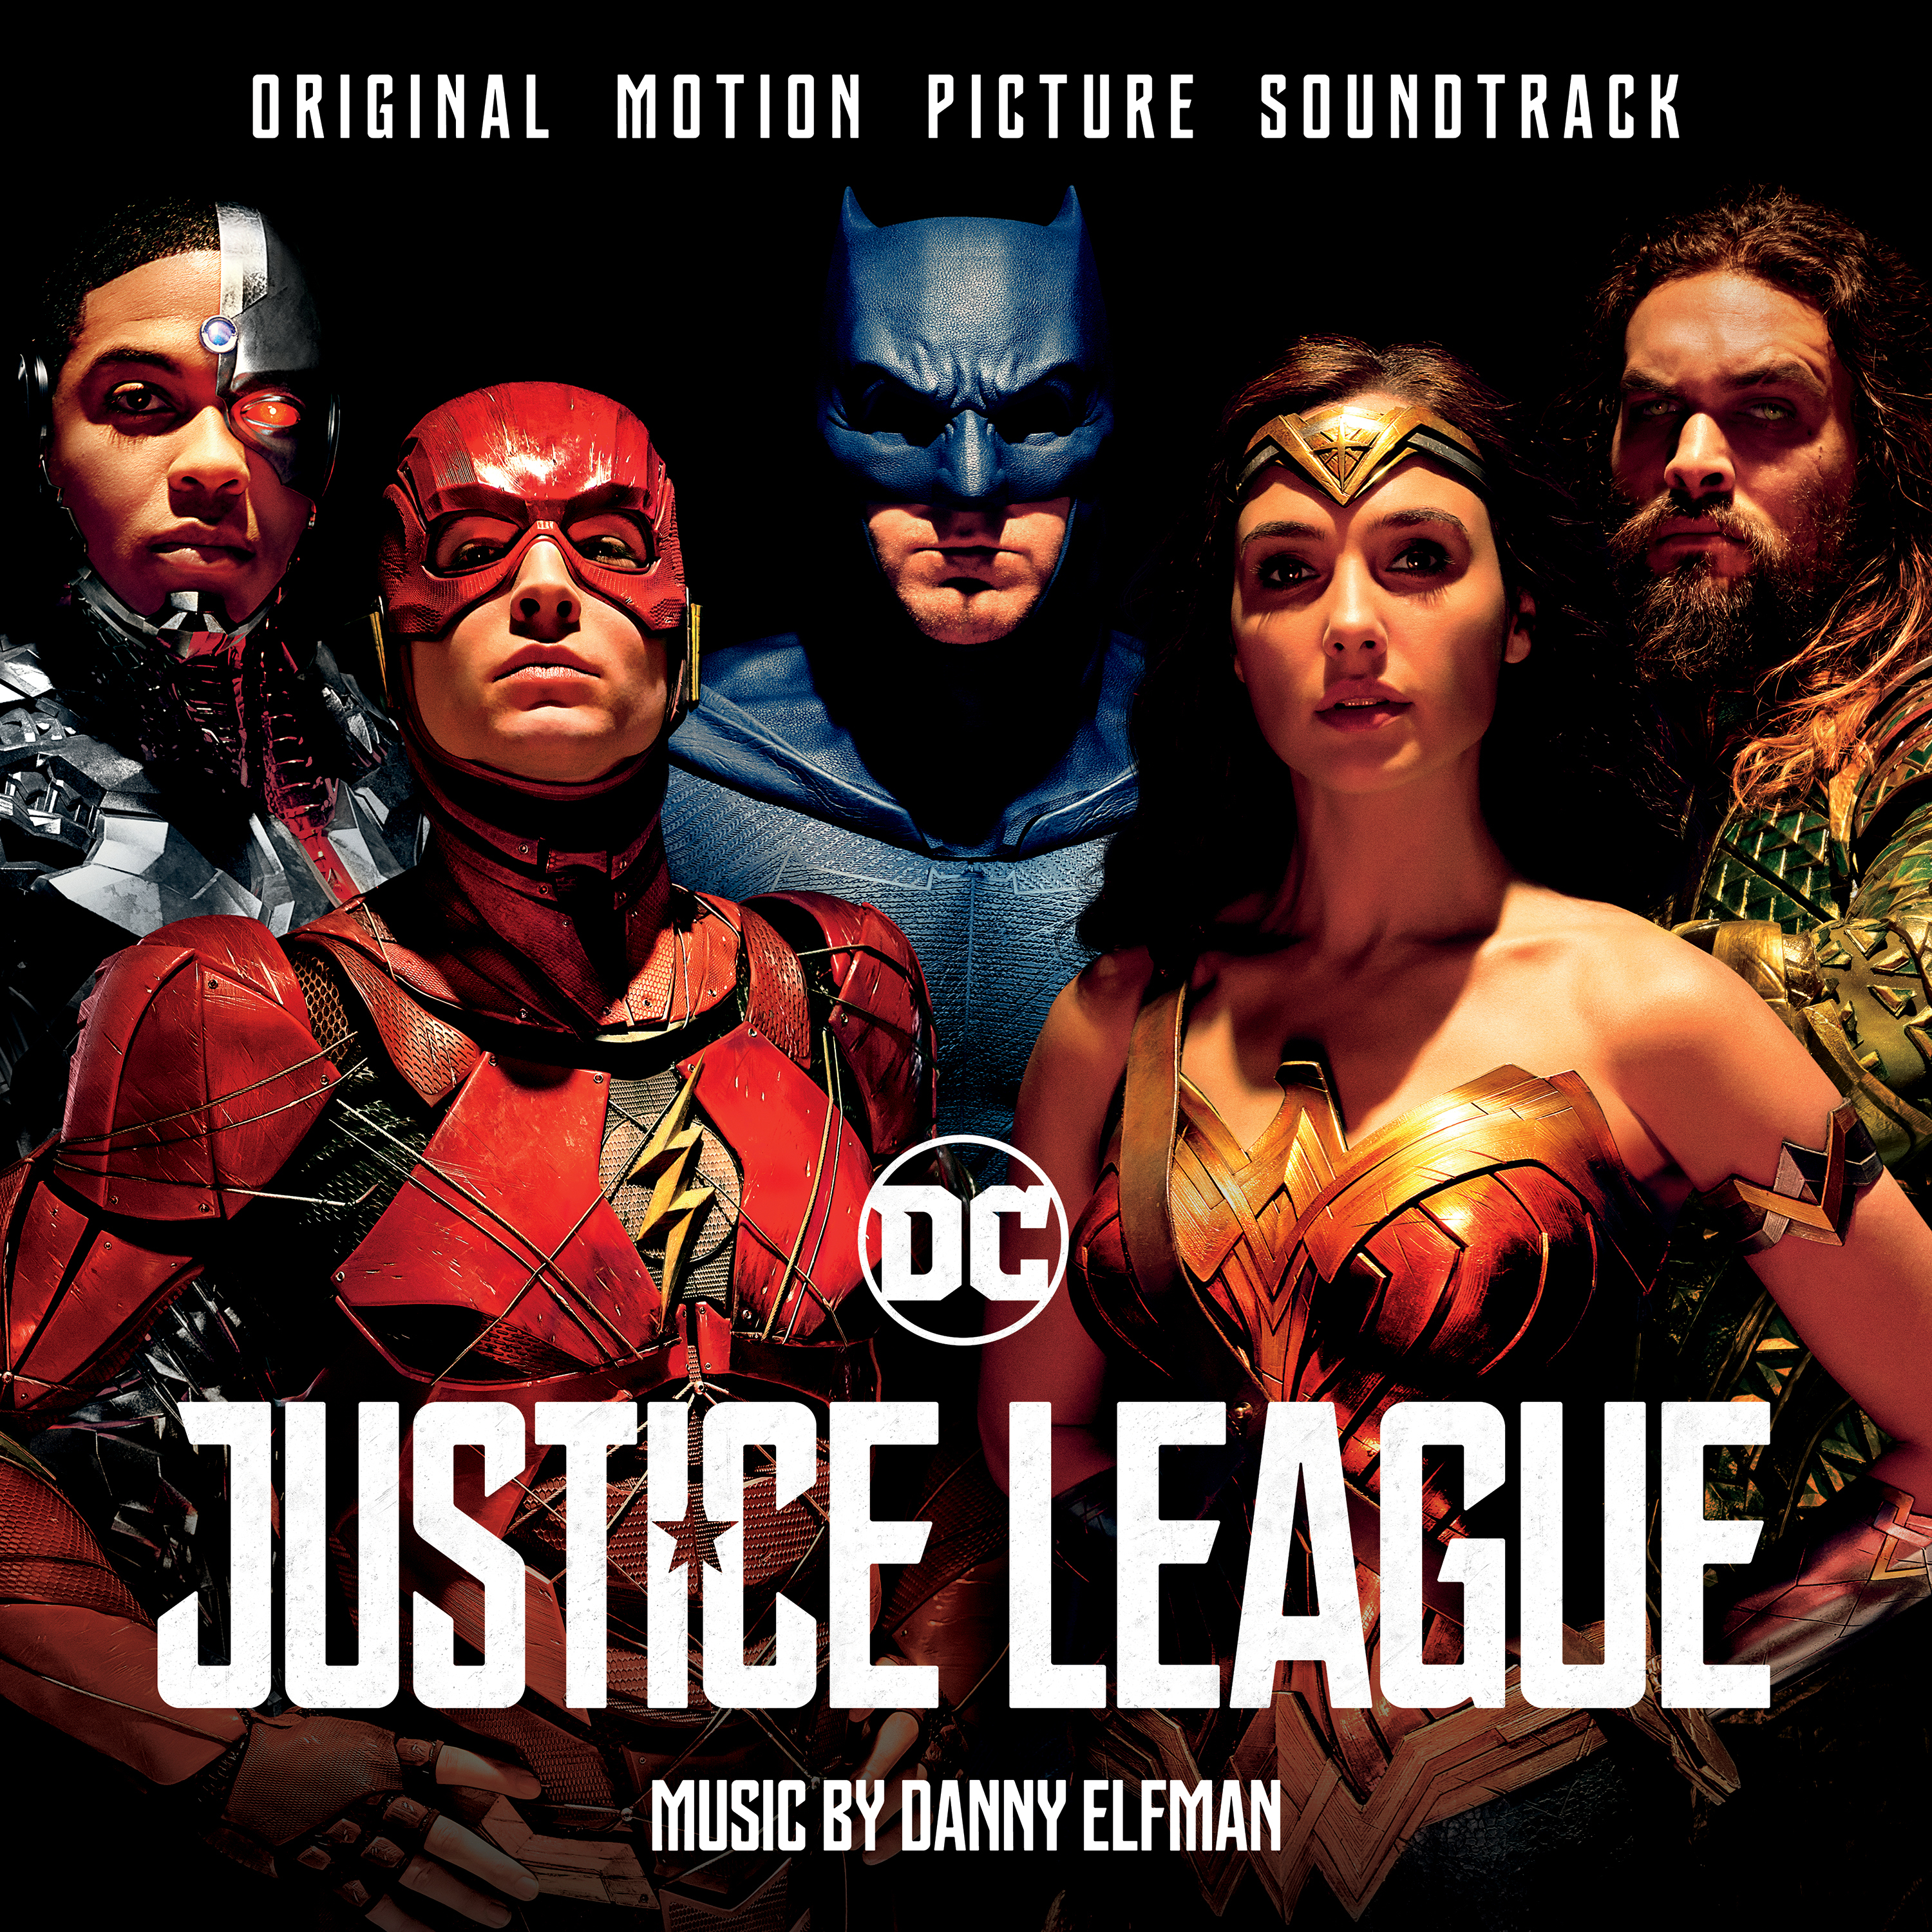 Justice League soundtrack